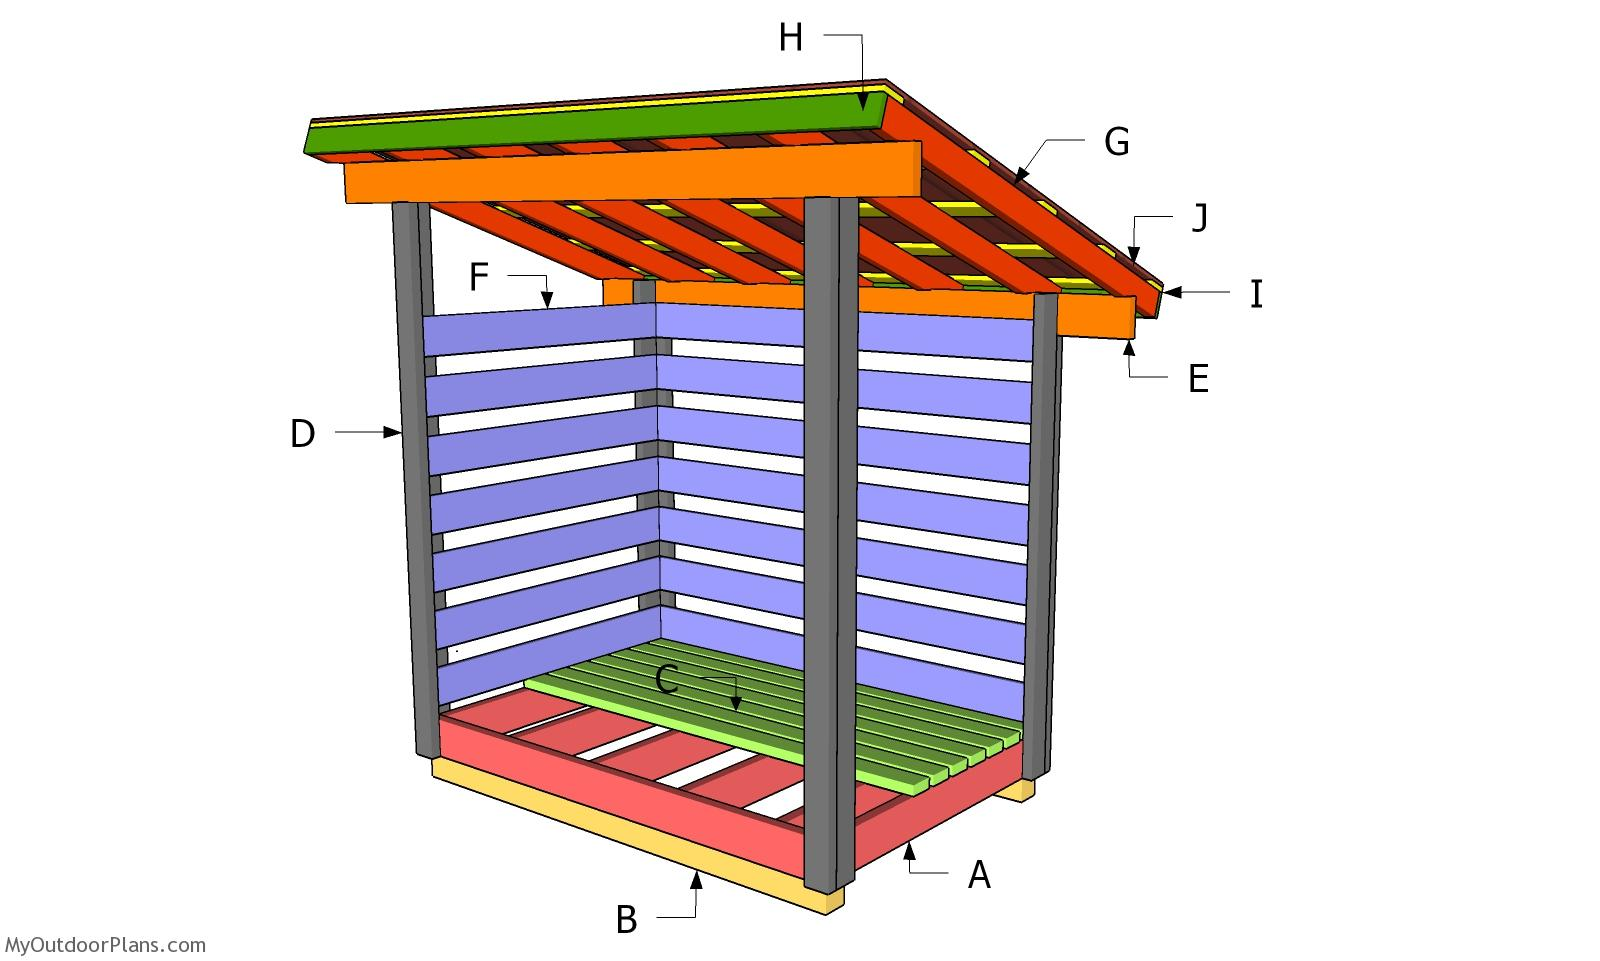 4x6 Firewood Shed Plans - Part 2